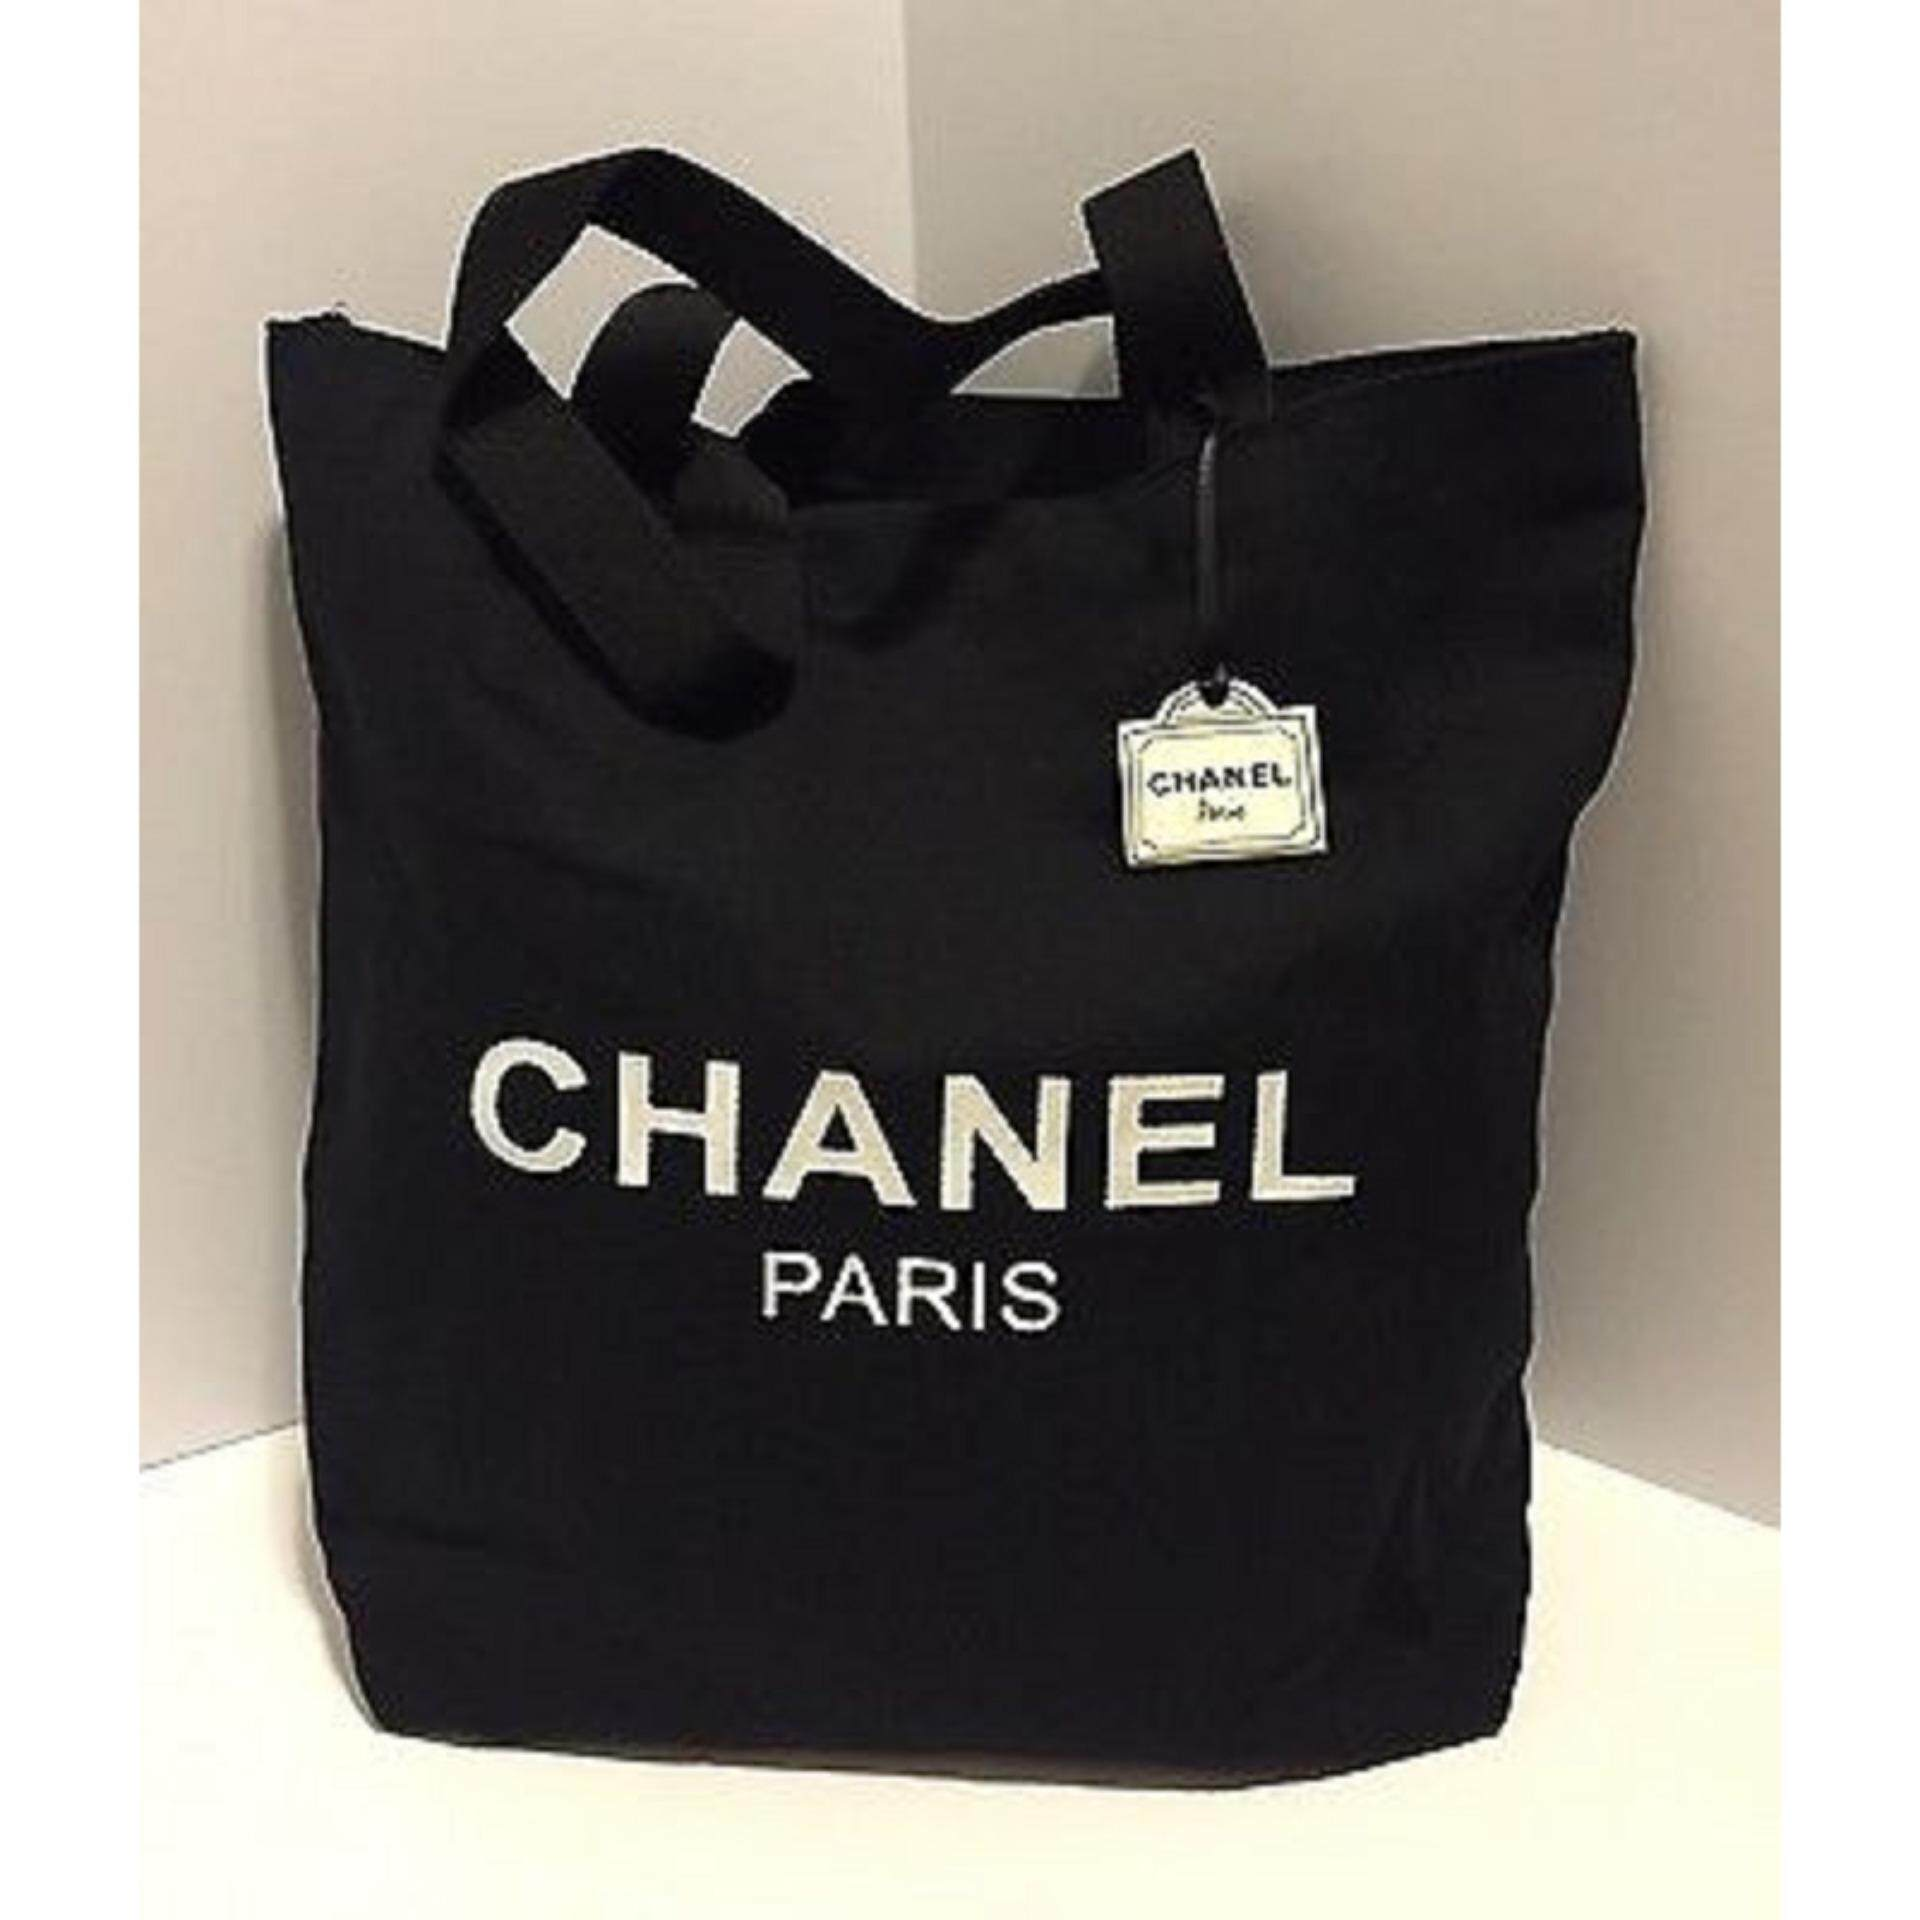 6303eb02b27d Chanel VIP GIFT Thick Canvas Tote Bag- Very Rare (Clearance Sale)